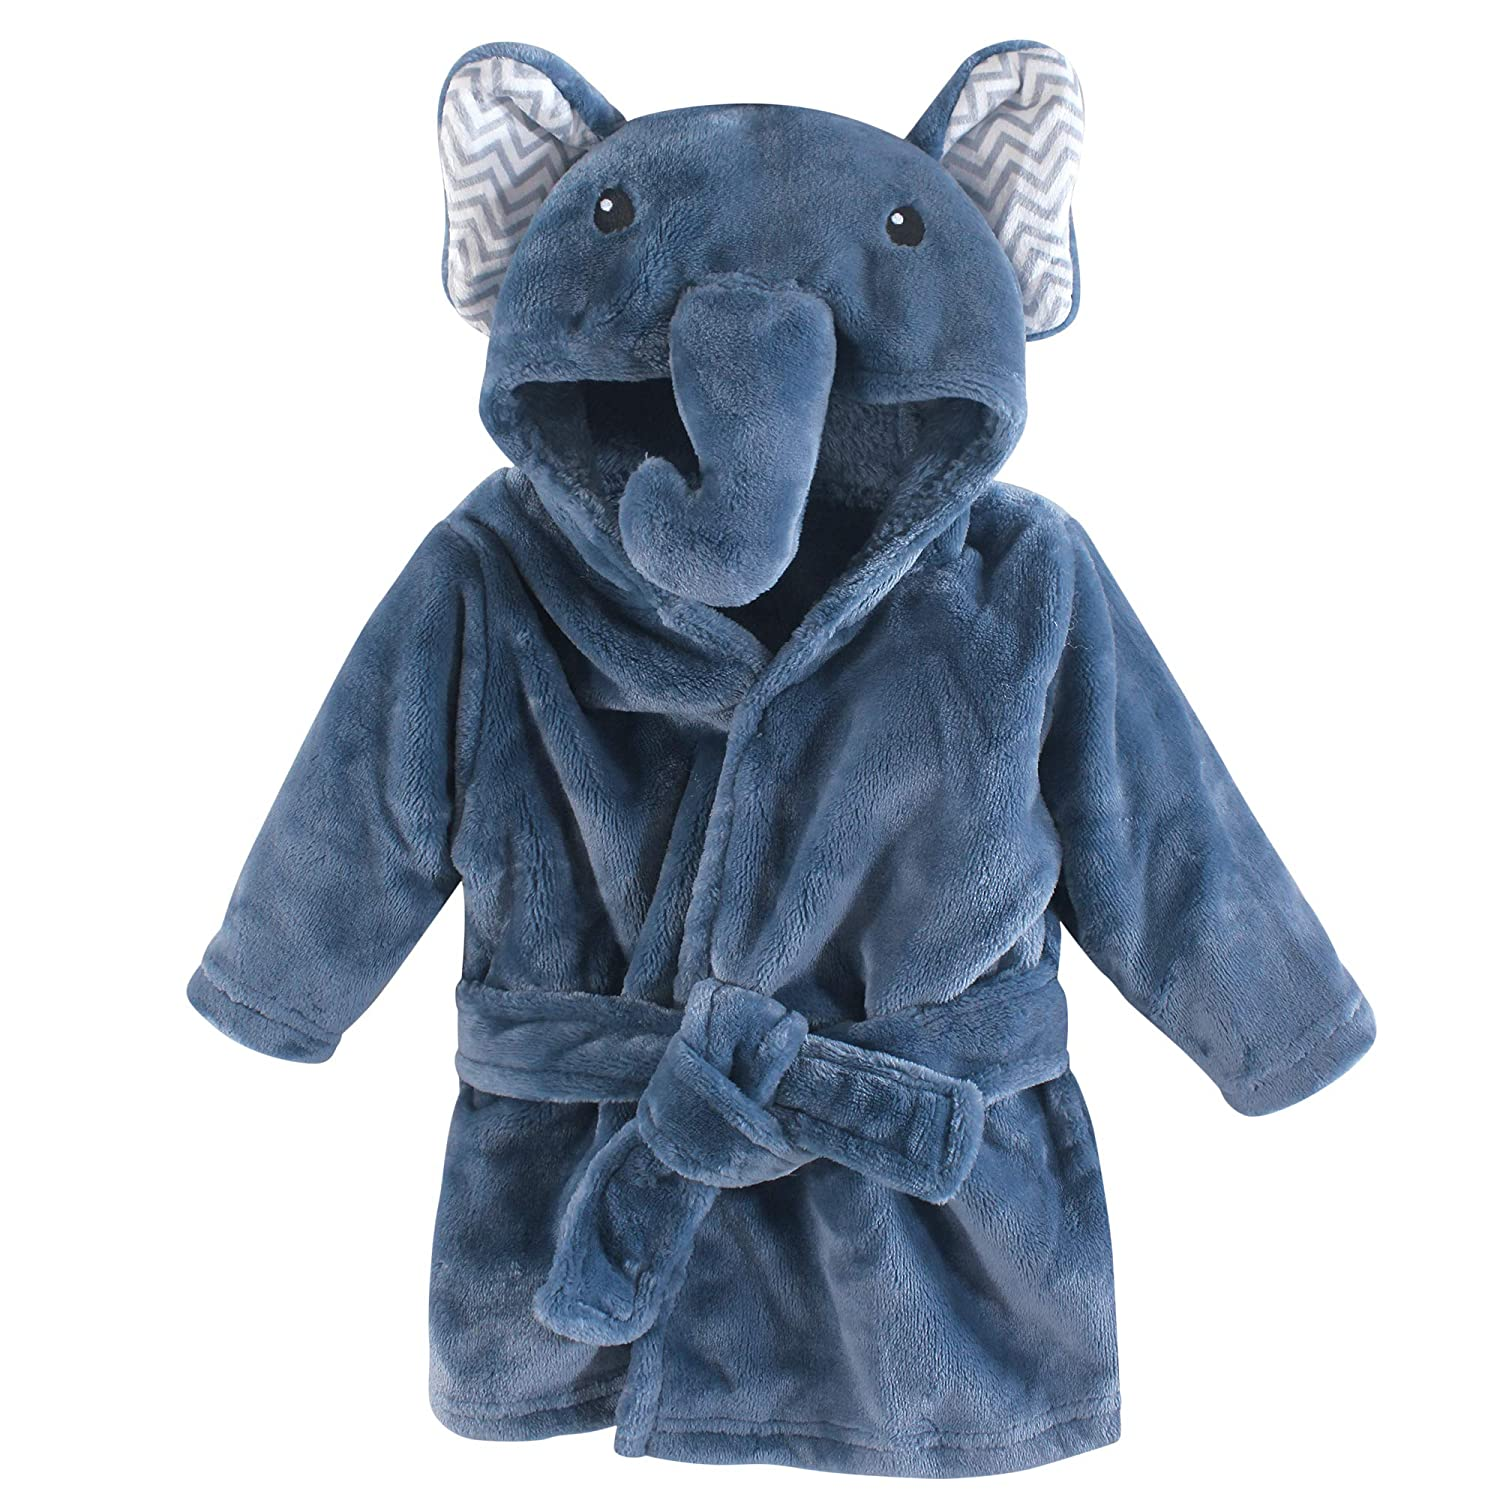 Little Treasure Plush Bathrobe, Blossom Elephant, 0-9 Months BabyVision Inc. Children' s Apparel 74003